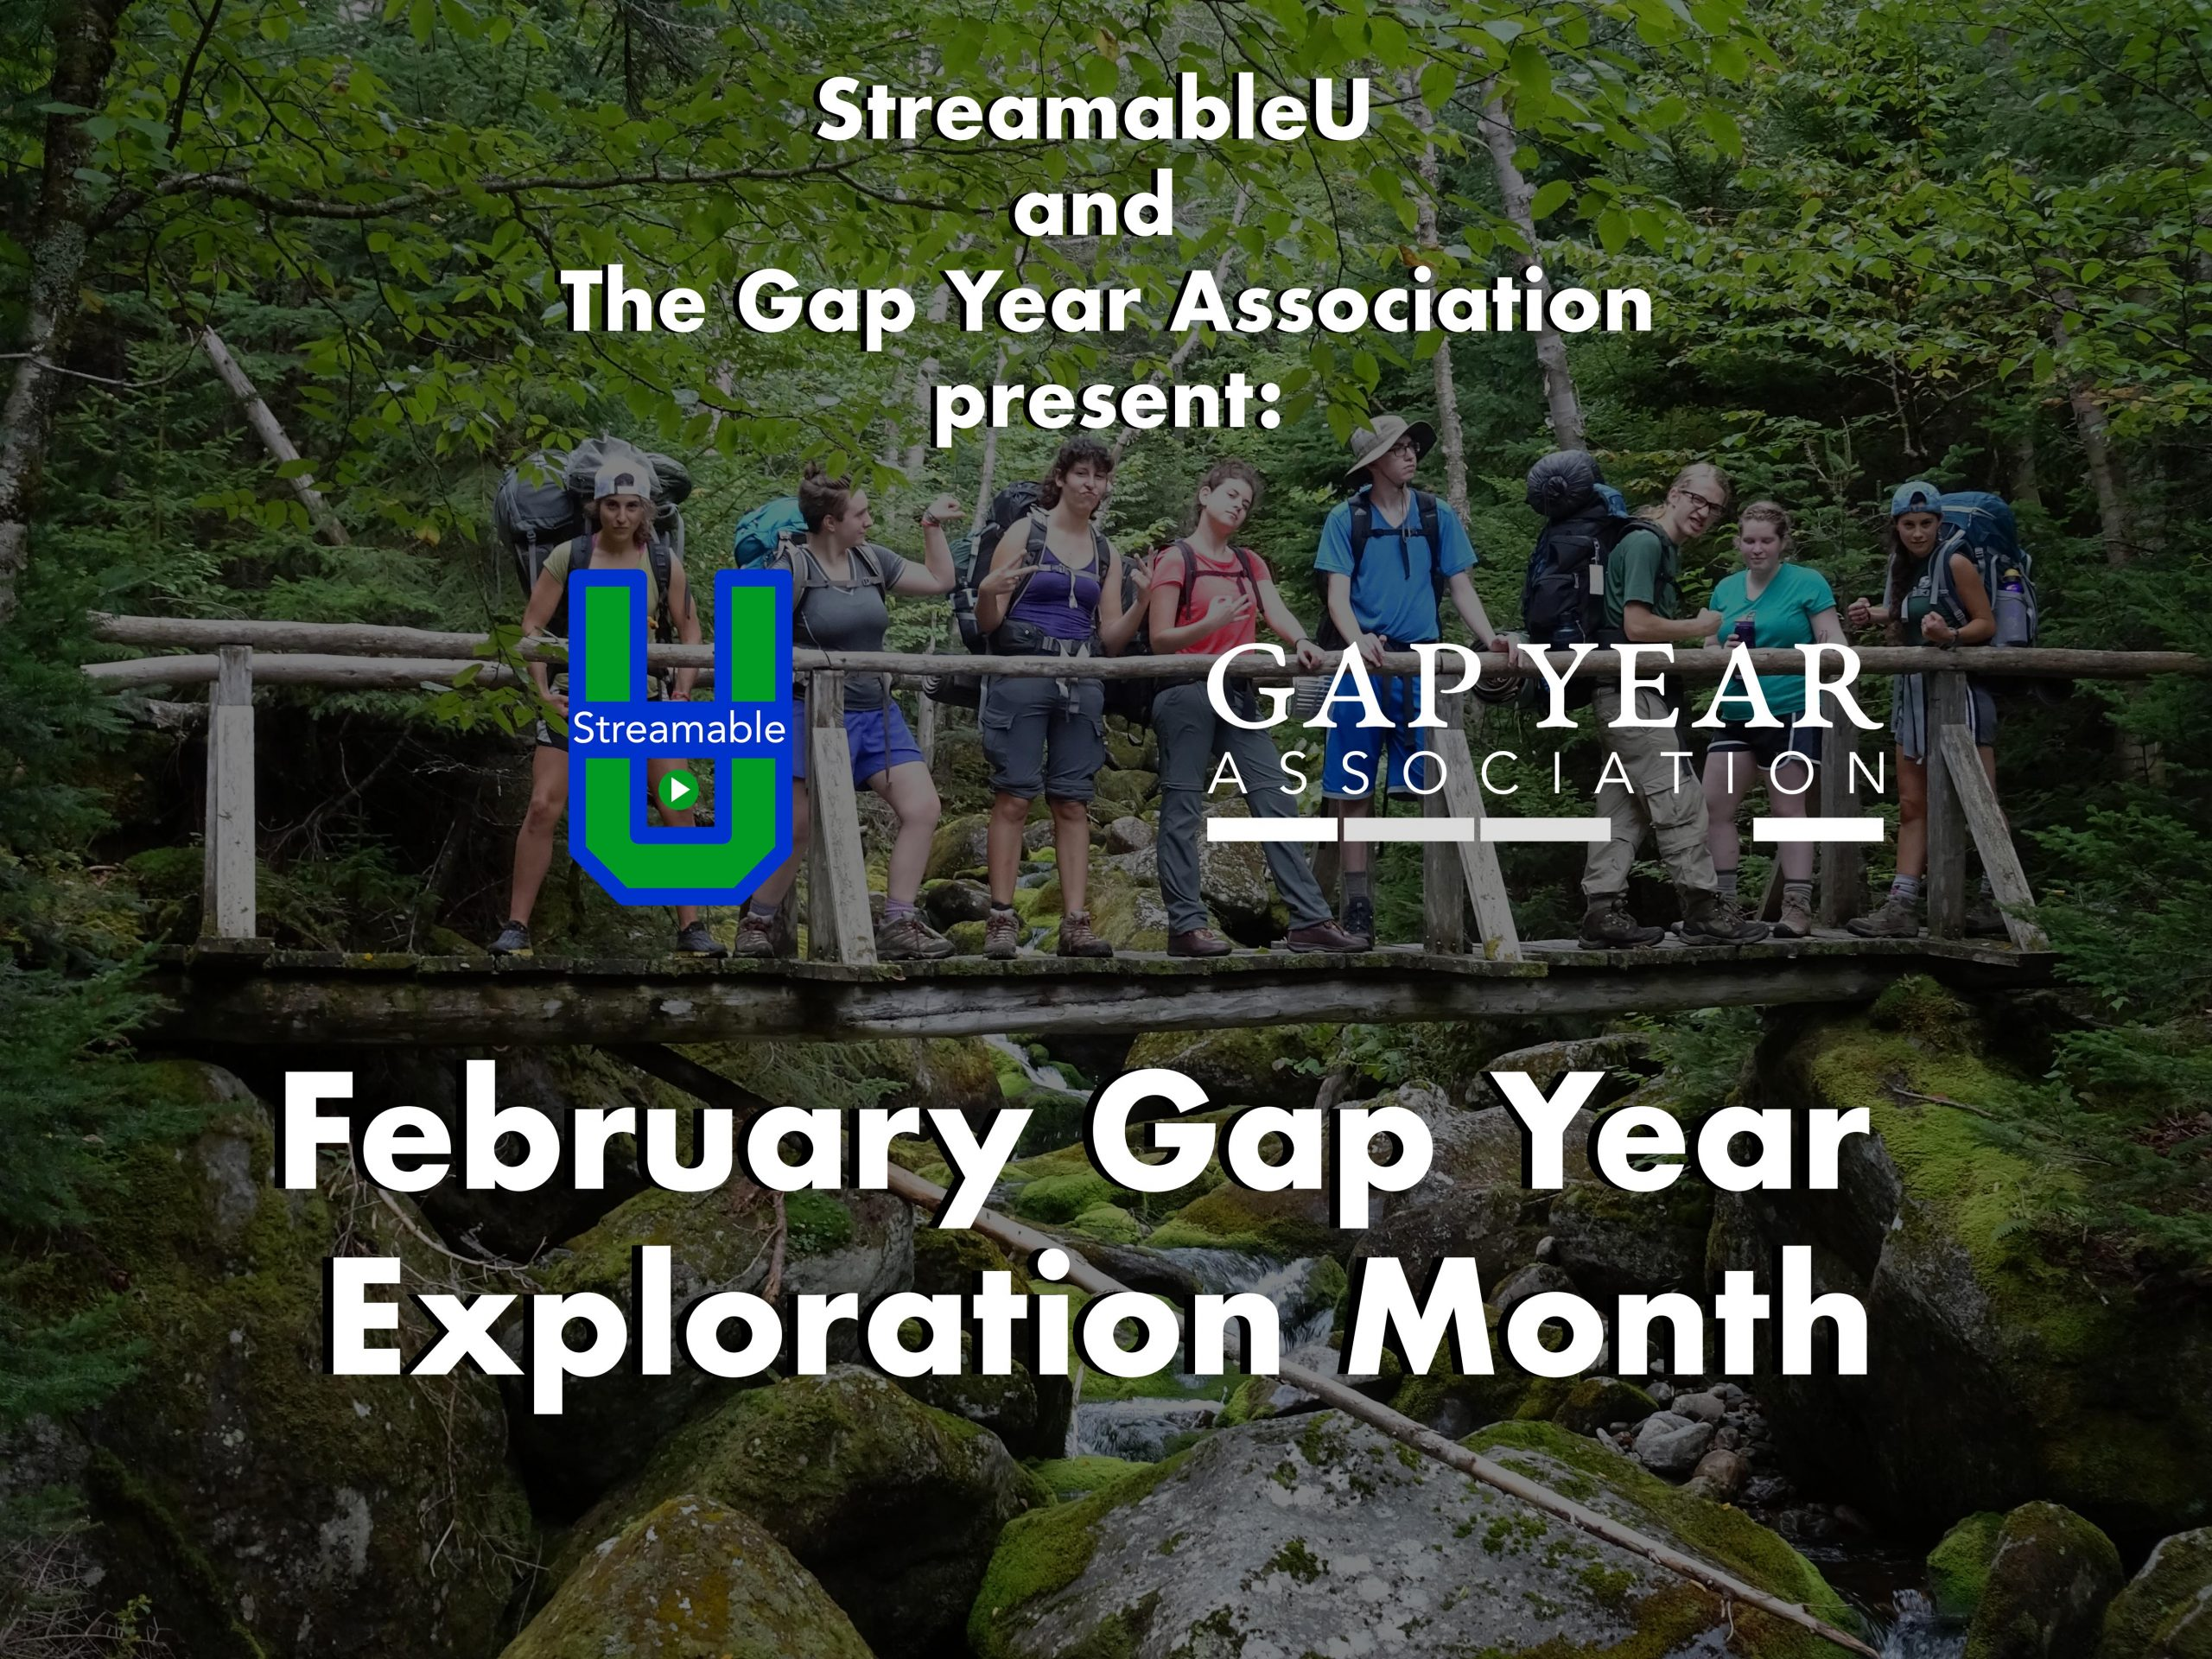 February is Gap Year Exploration Month!